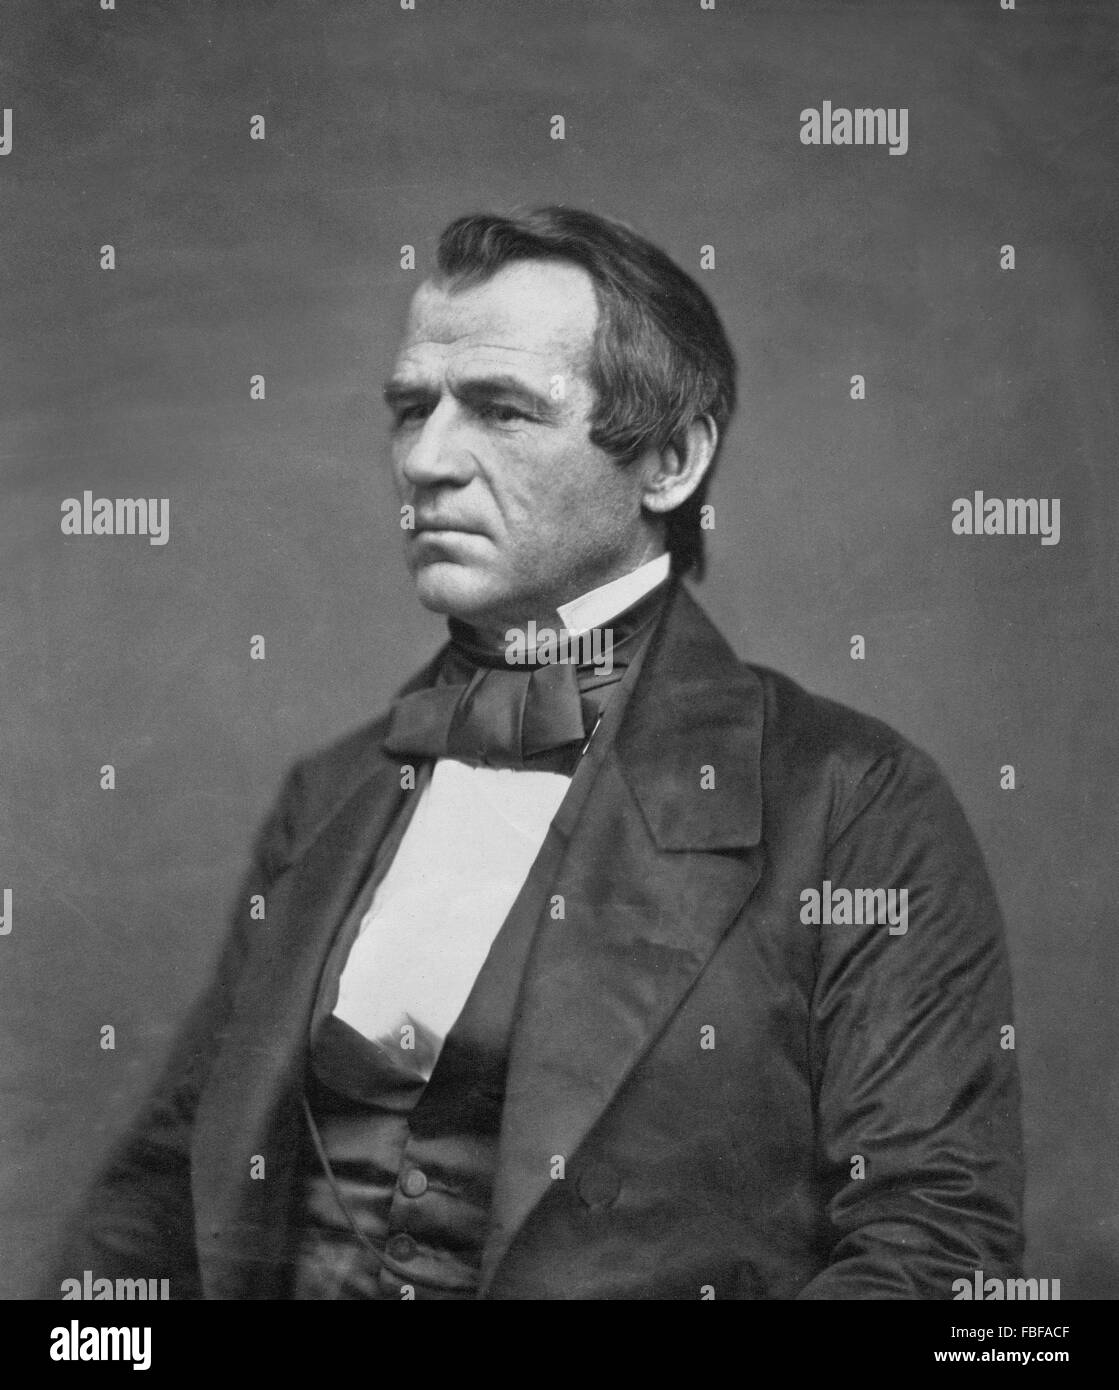 Andrew Johnson, portrait  of the 7th US President by Jesse Harrison Whitehurst, 1860 - Stock Image